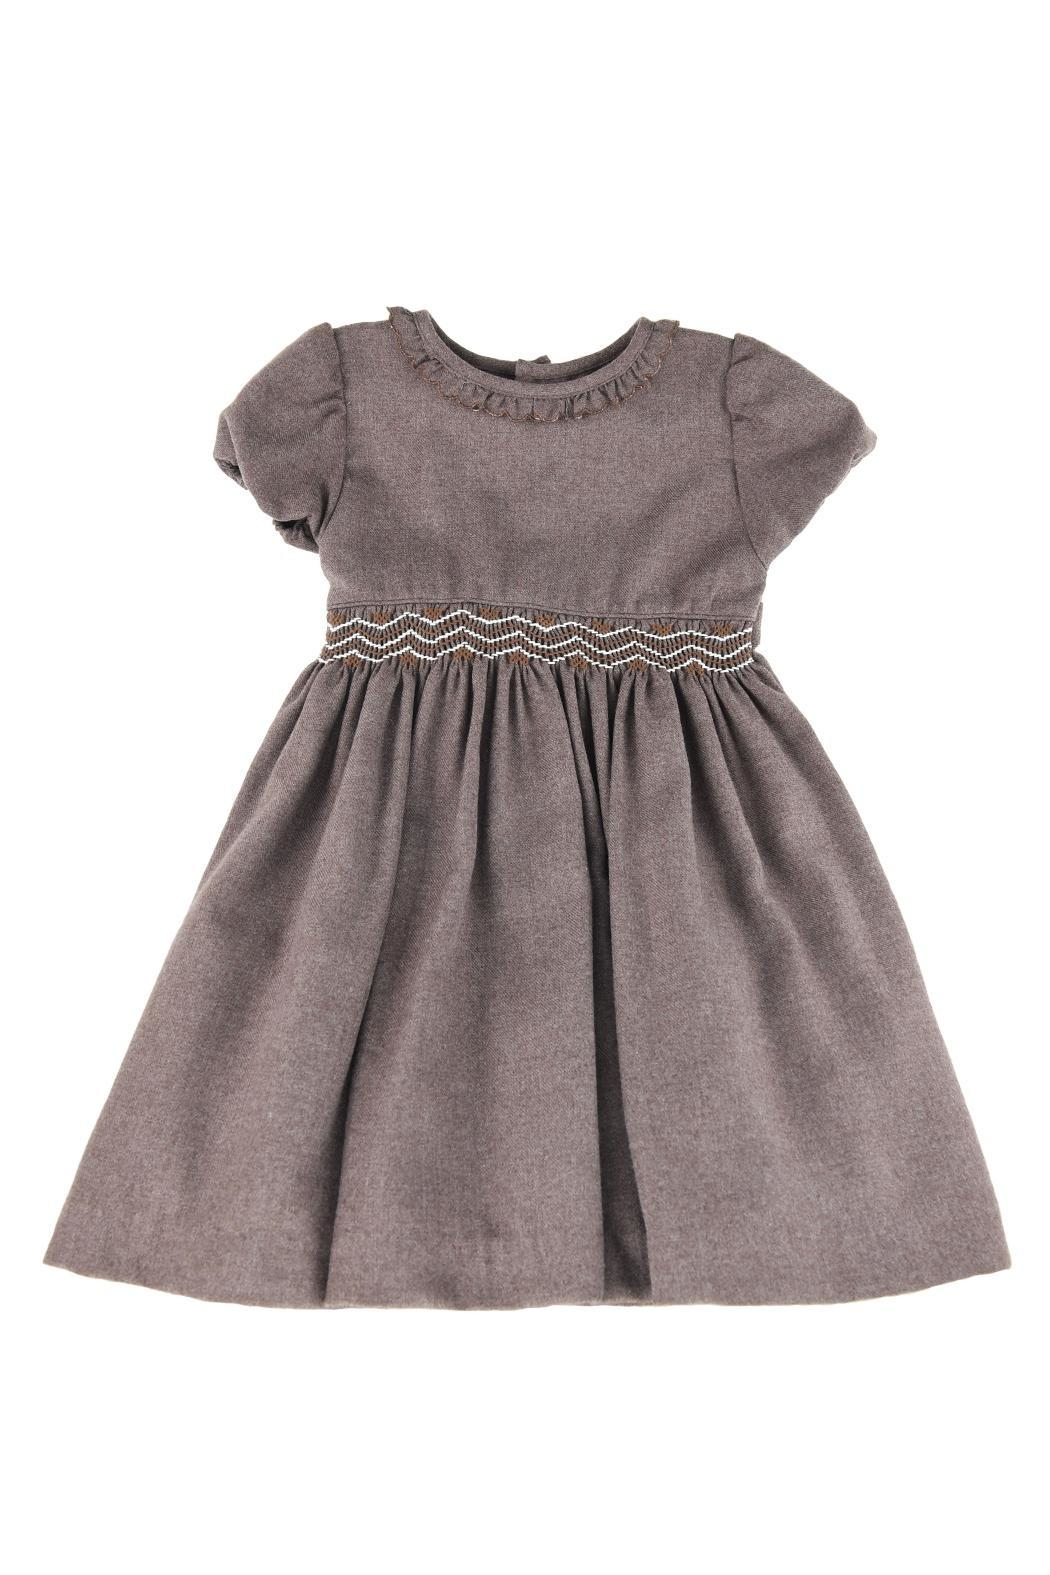 Malvi & Co. Brown Smocked Dress. - Main Image